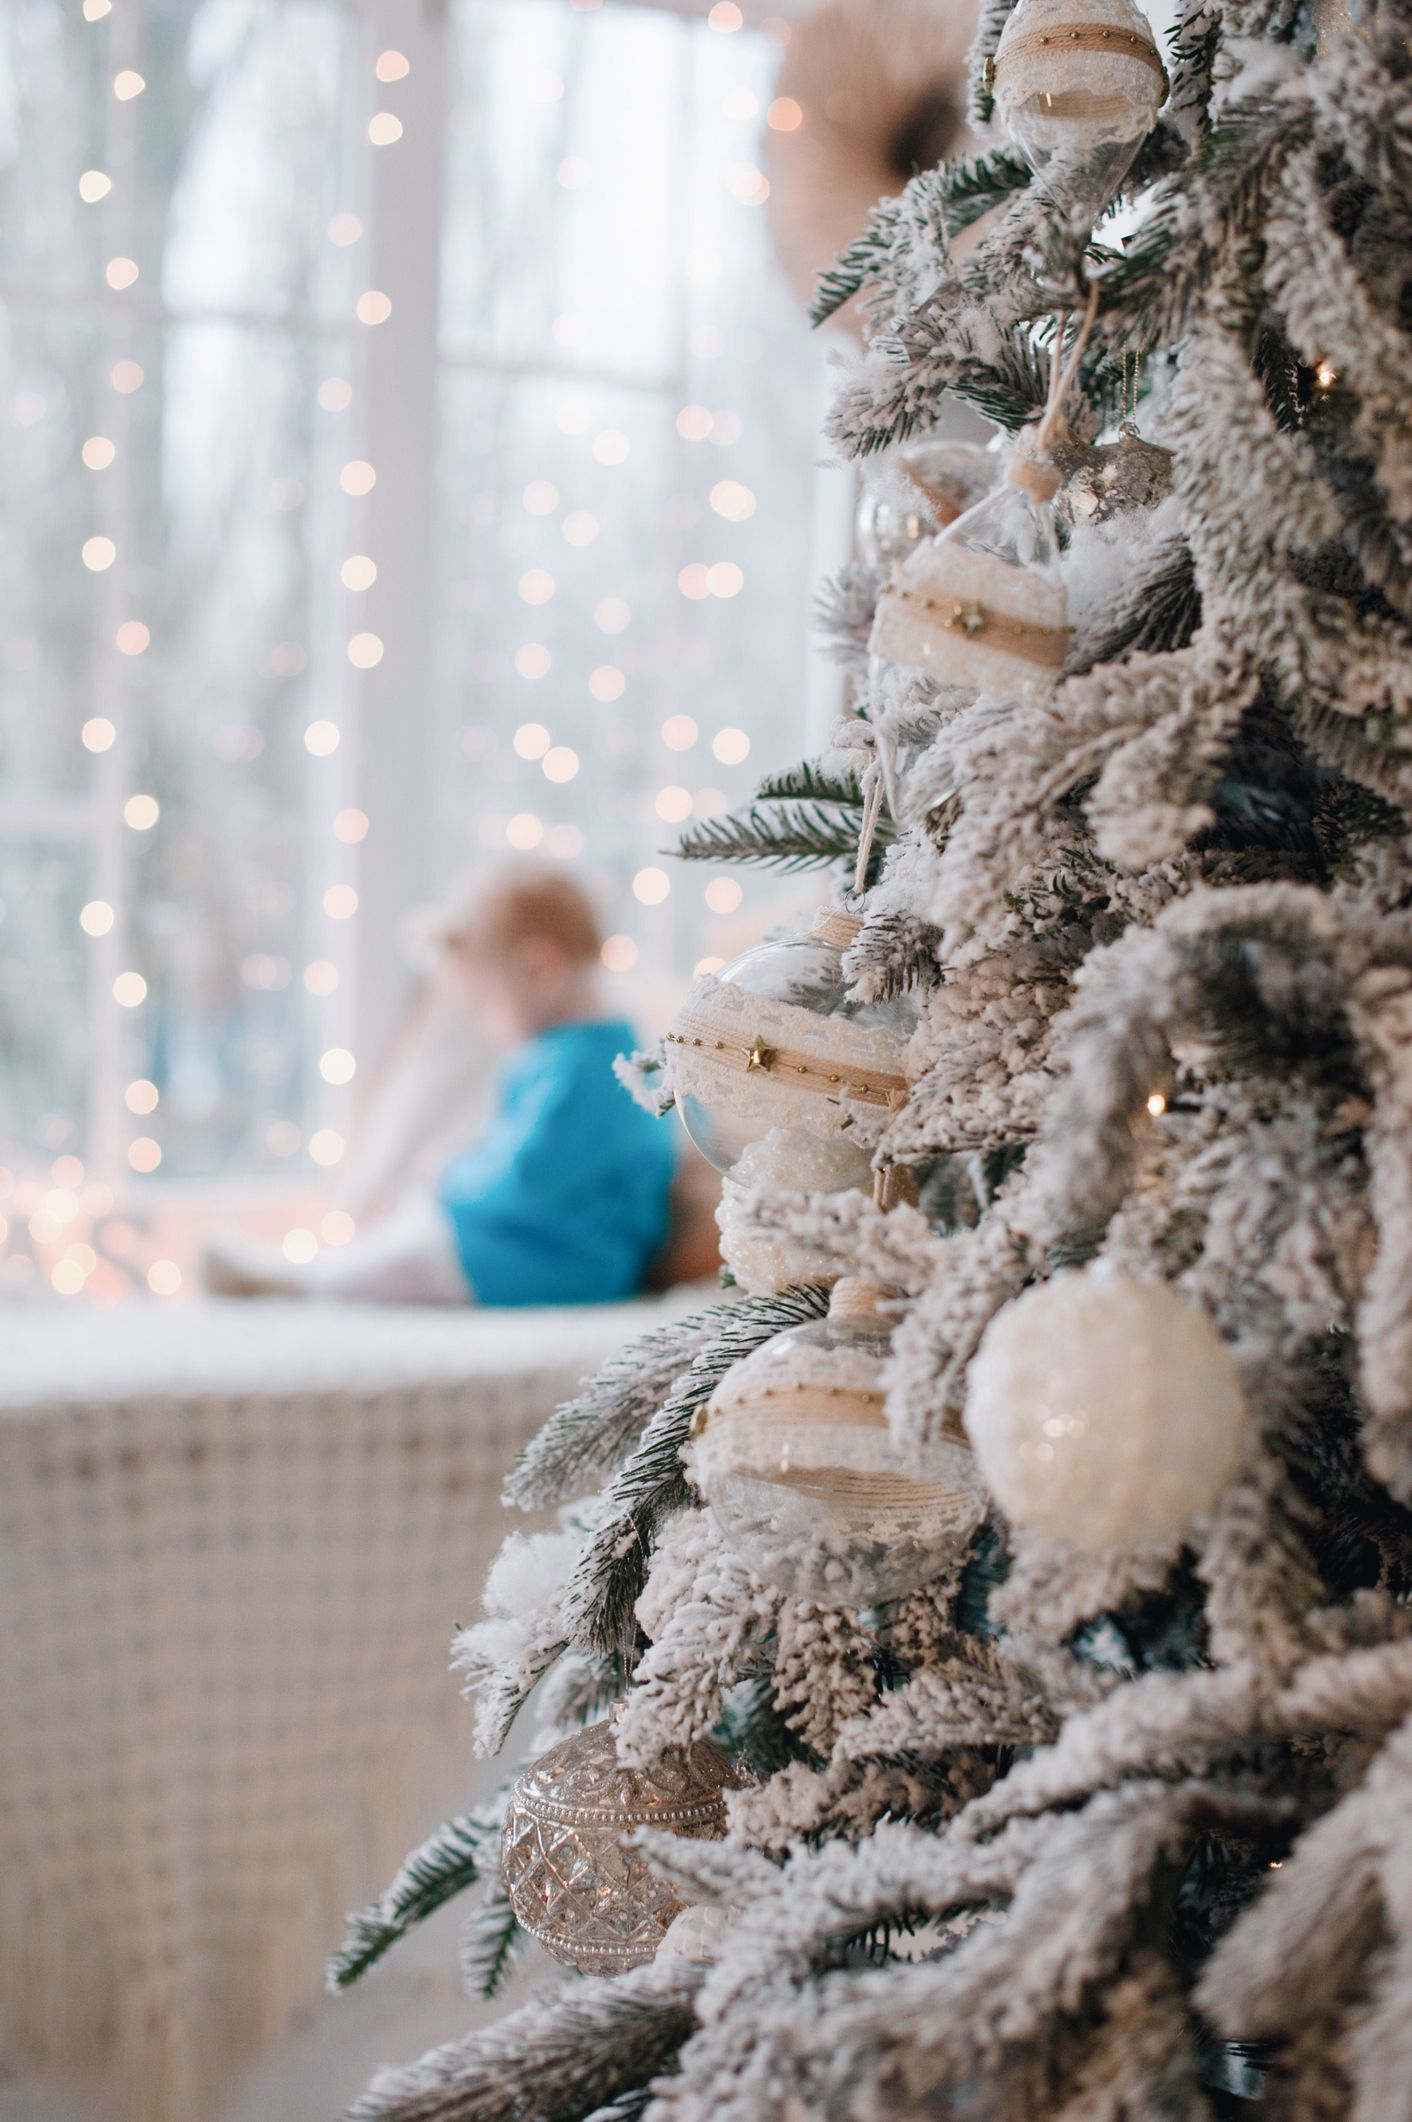 The 7 Best Places to Buy a Christmas Tree in 2021